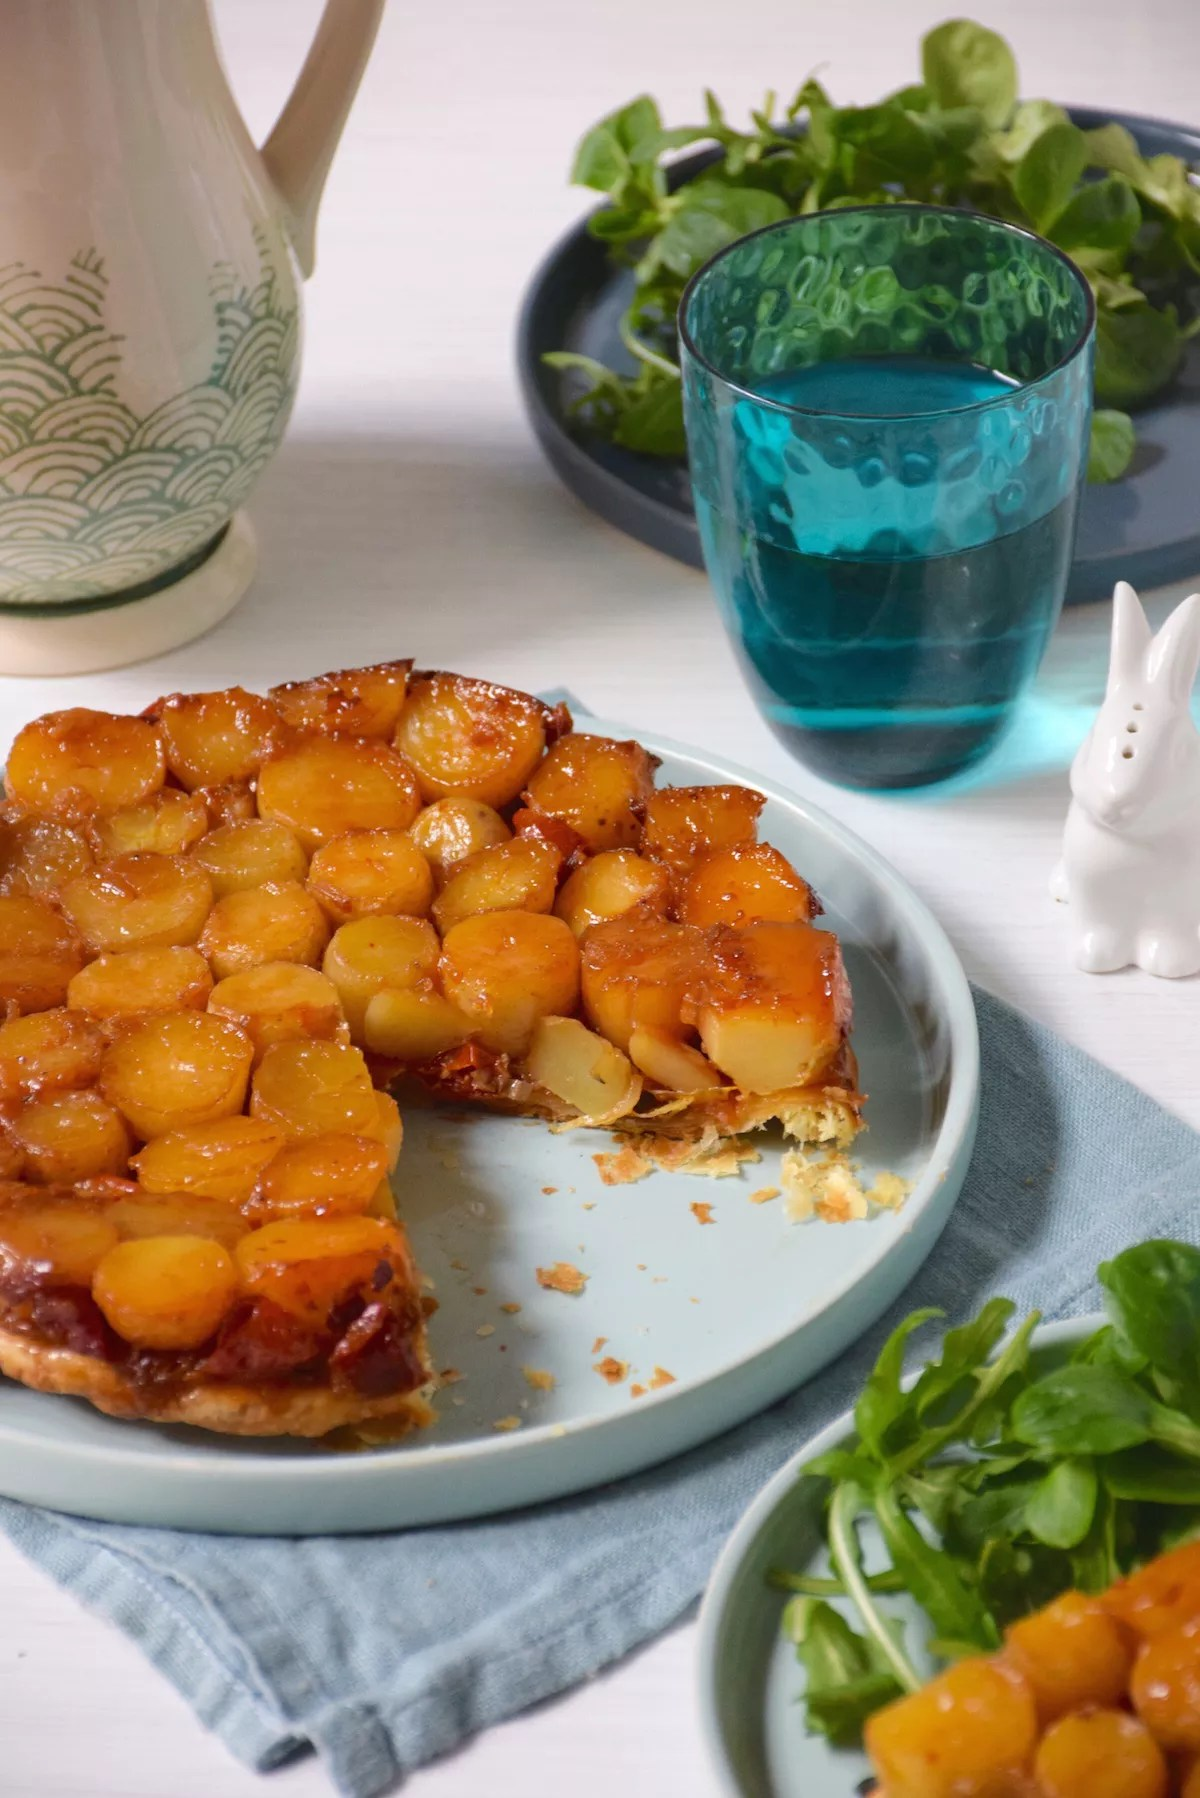 Ottolenghi Surprise tatin (made with baby potatoes)